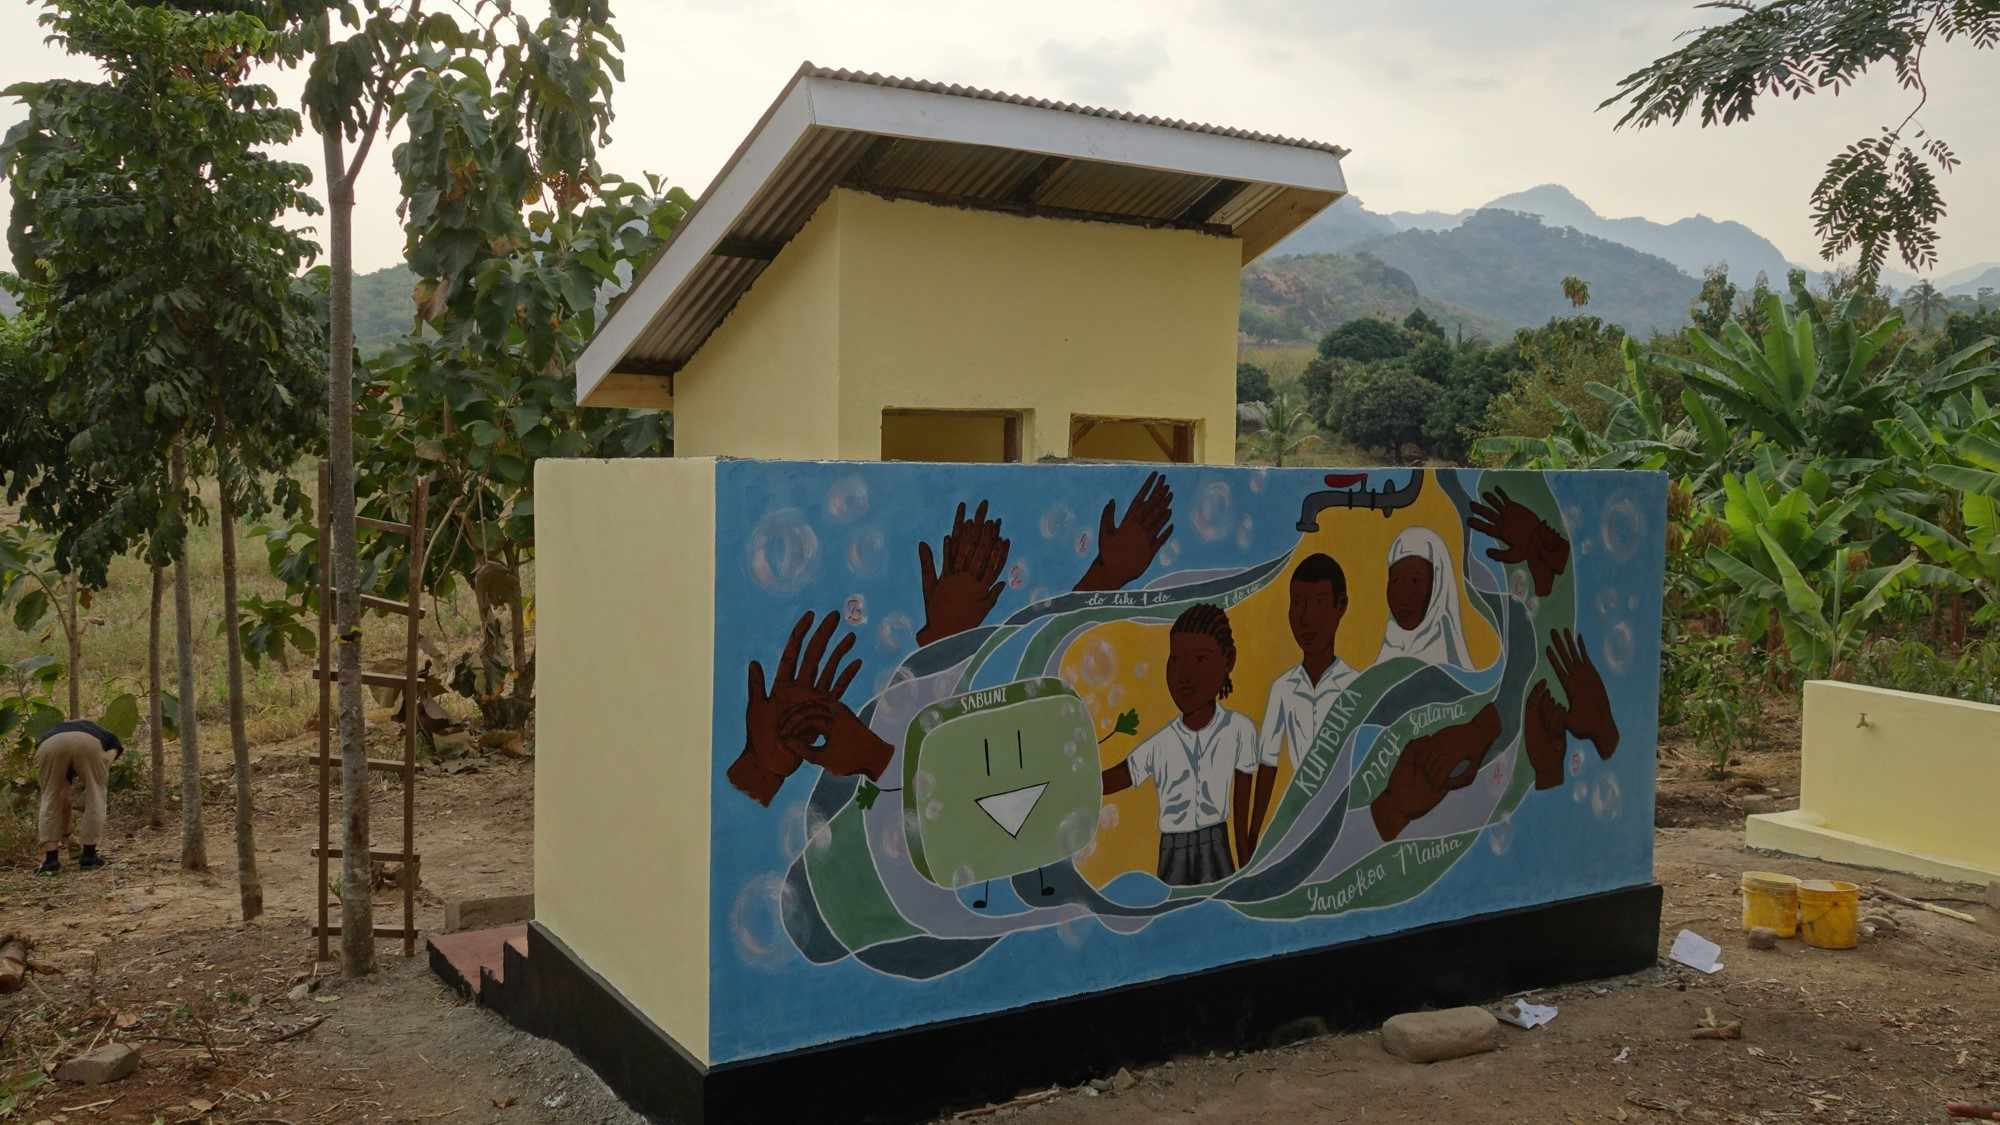 The newly build school toilet!